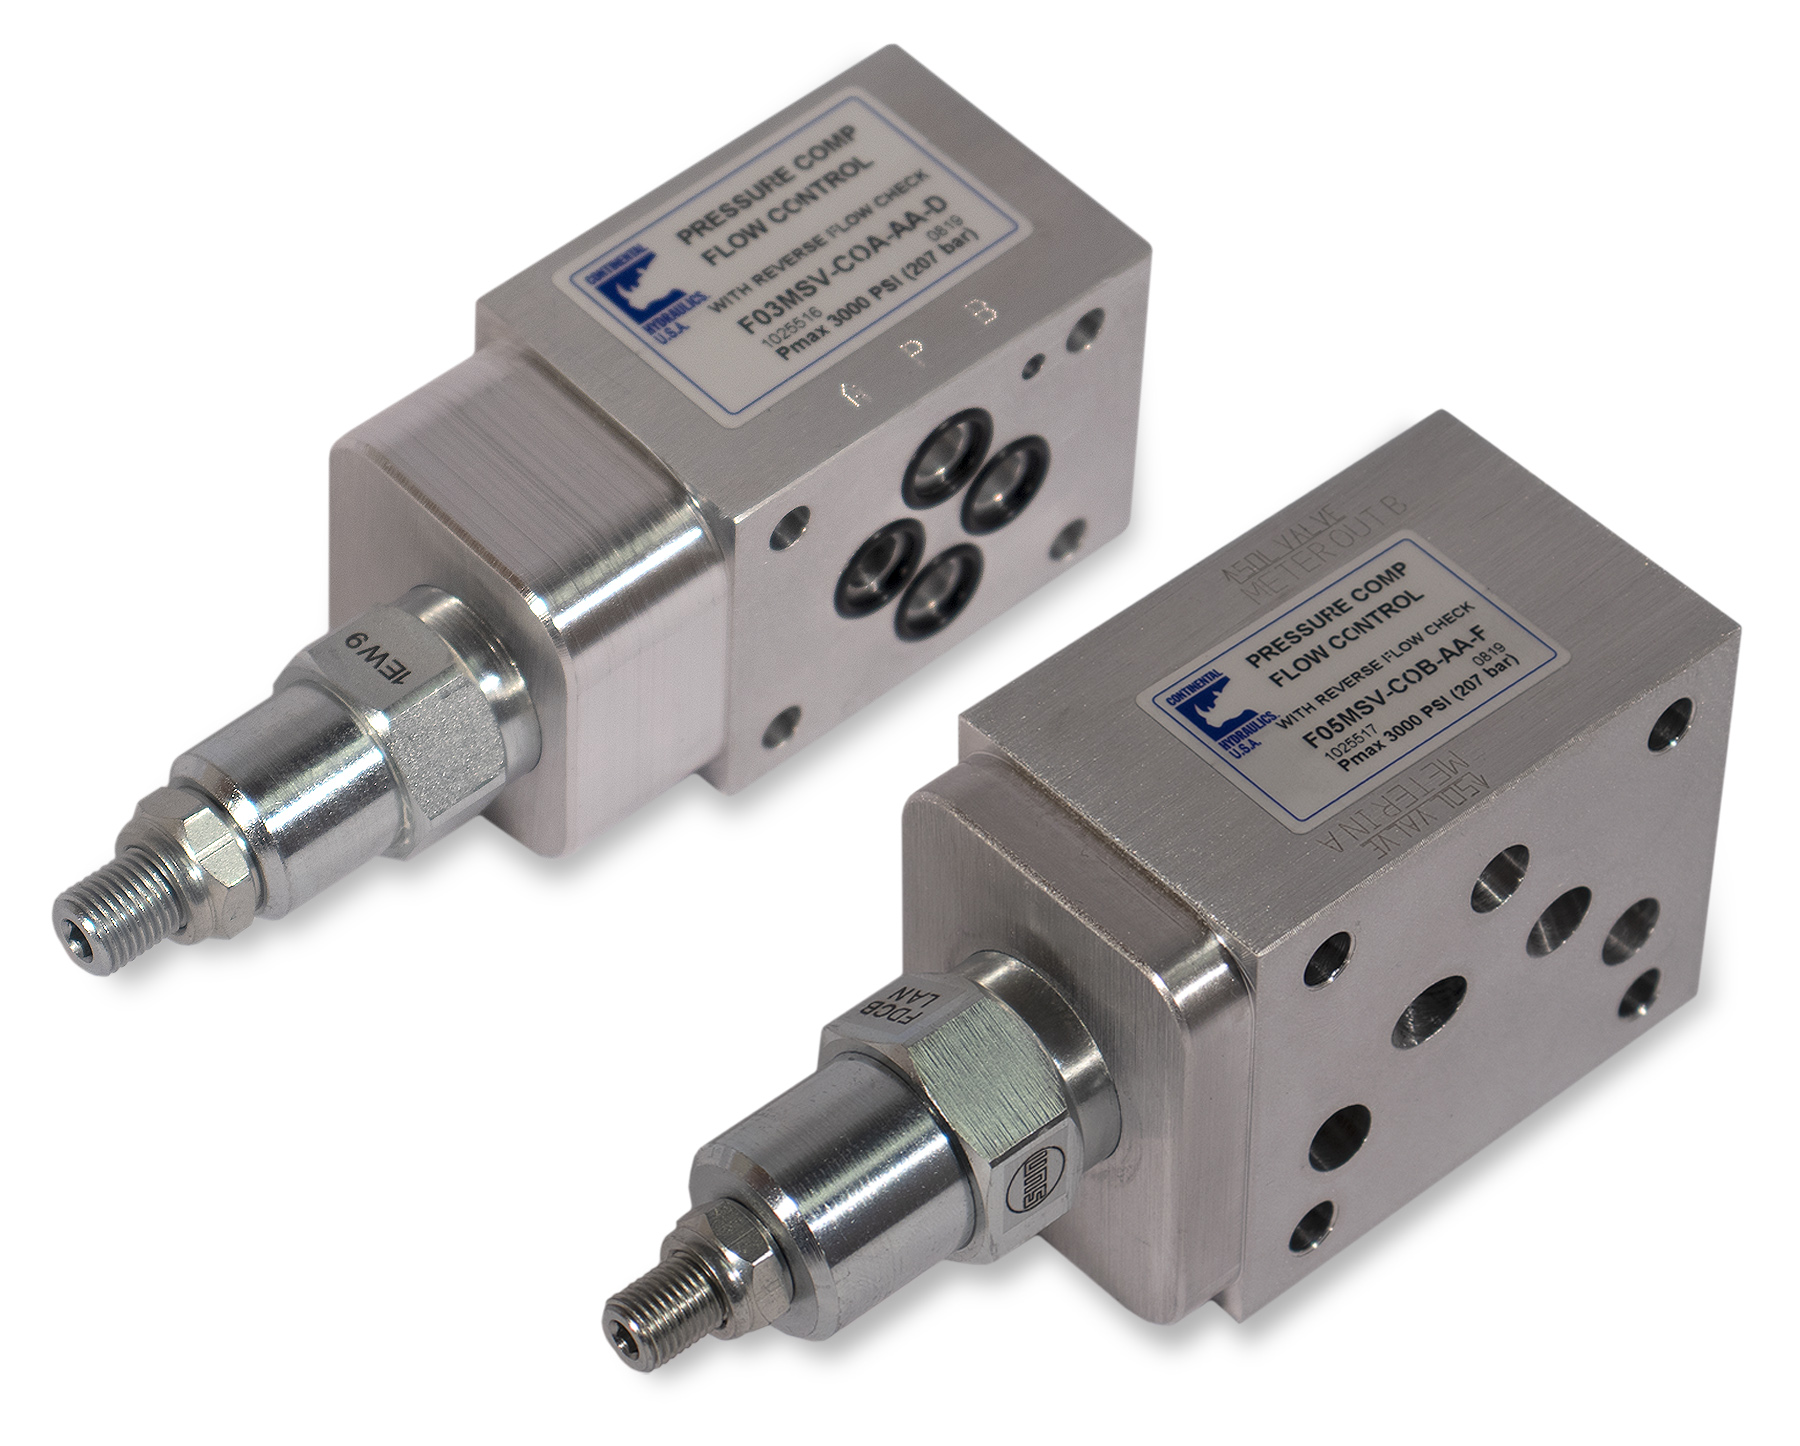 F03 and F05MSV-C flow control valves; white background